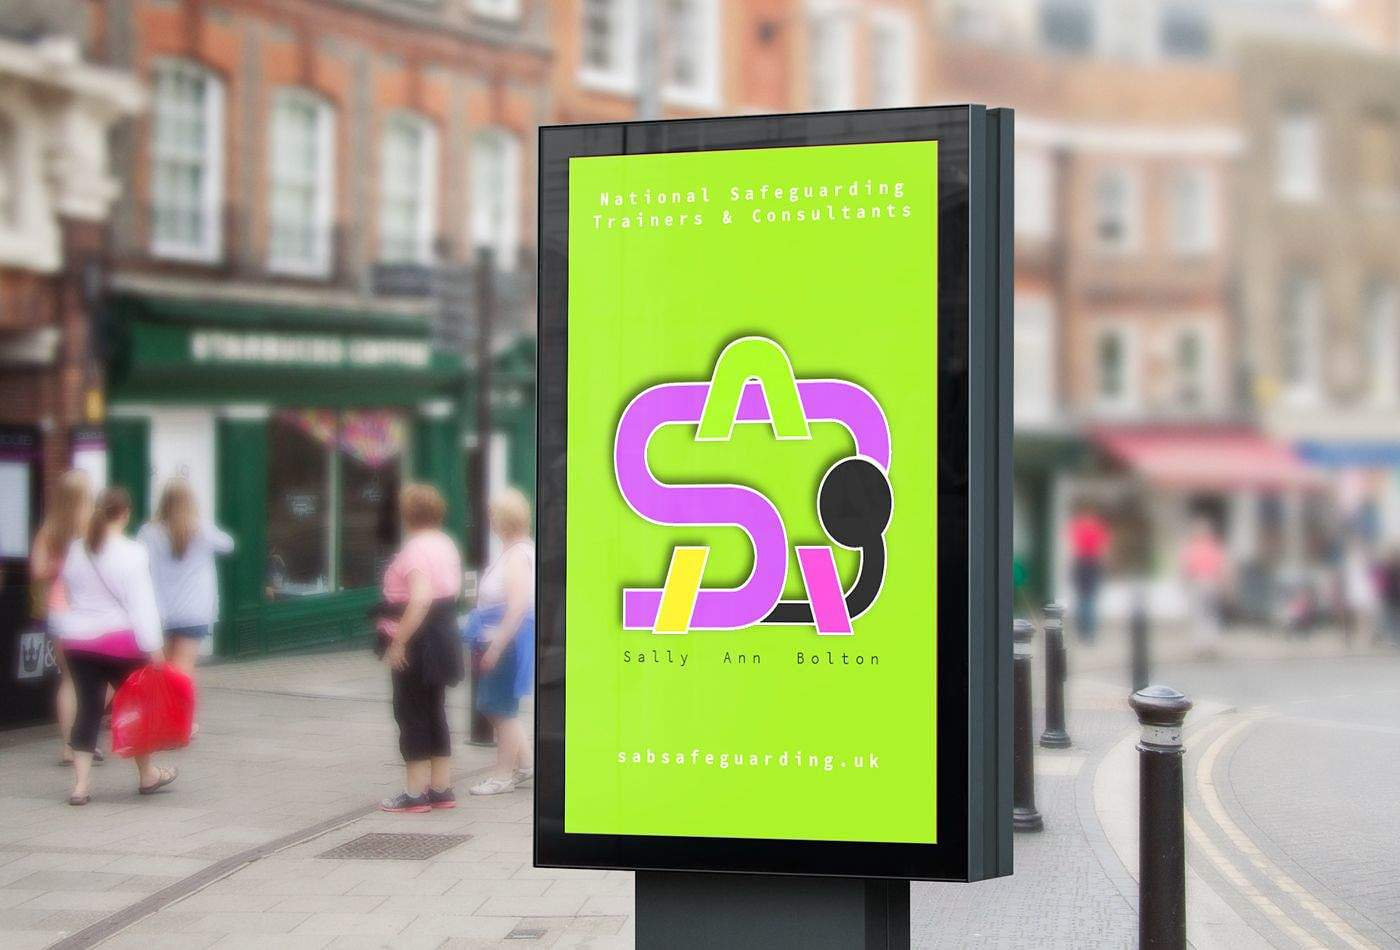 sab iconery street billboard - example of the icon design